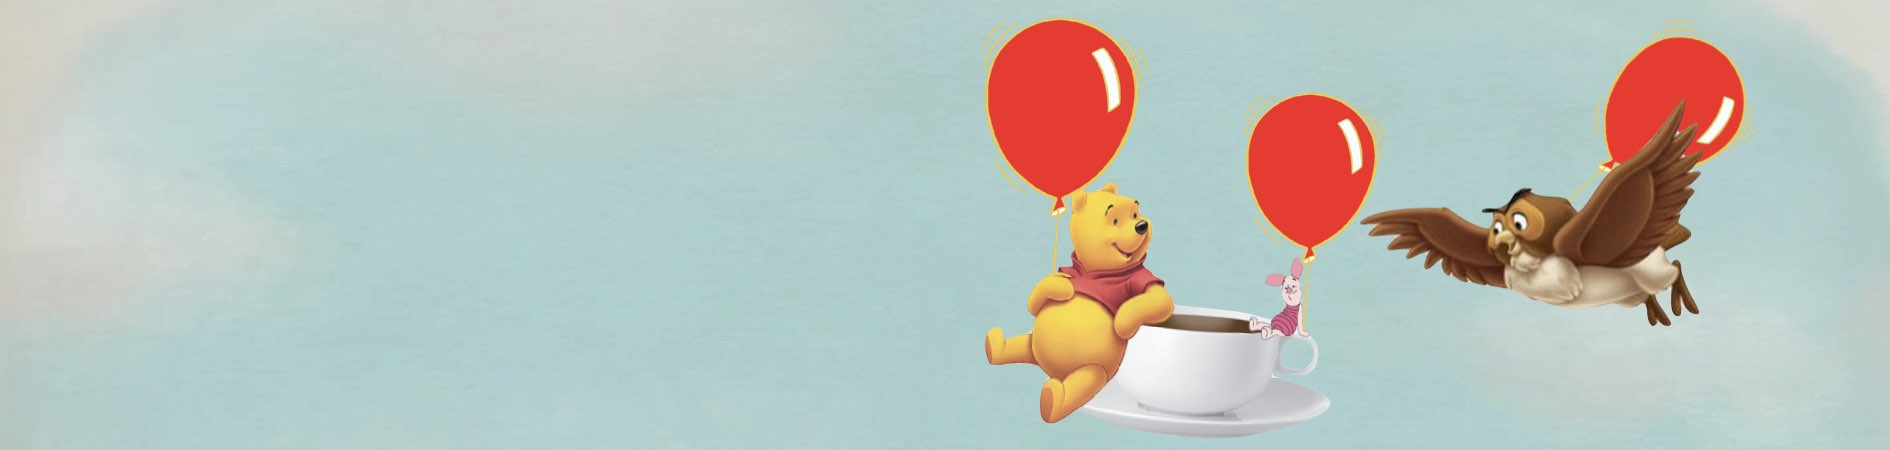 Pooh, Owl and Piglet with Balloons